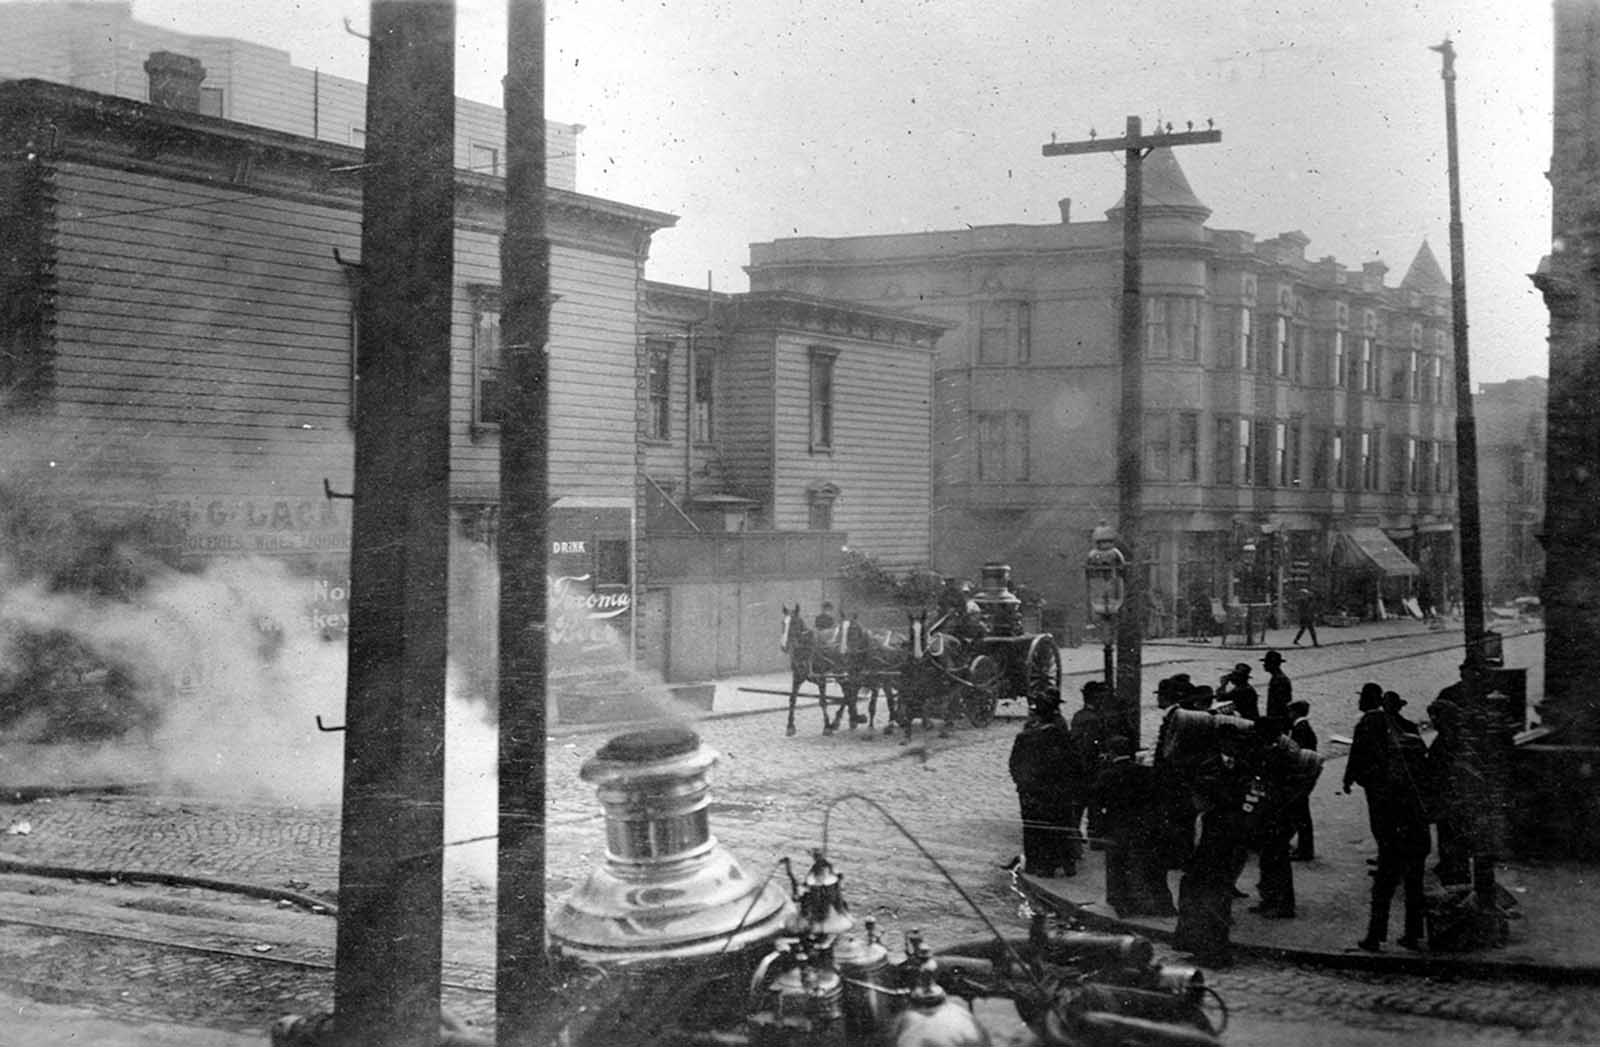 A horse-drawn fire engine retires from a fire to move to a new location on April 19, 1906.